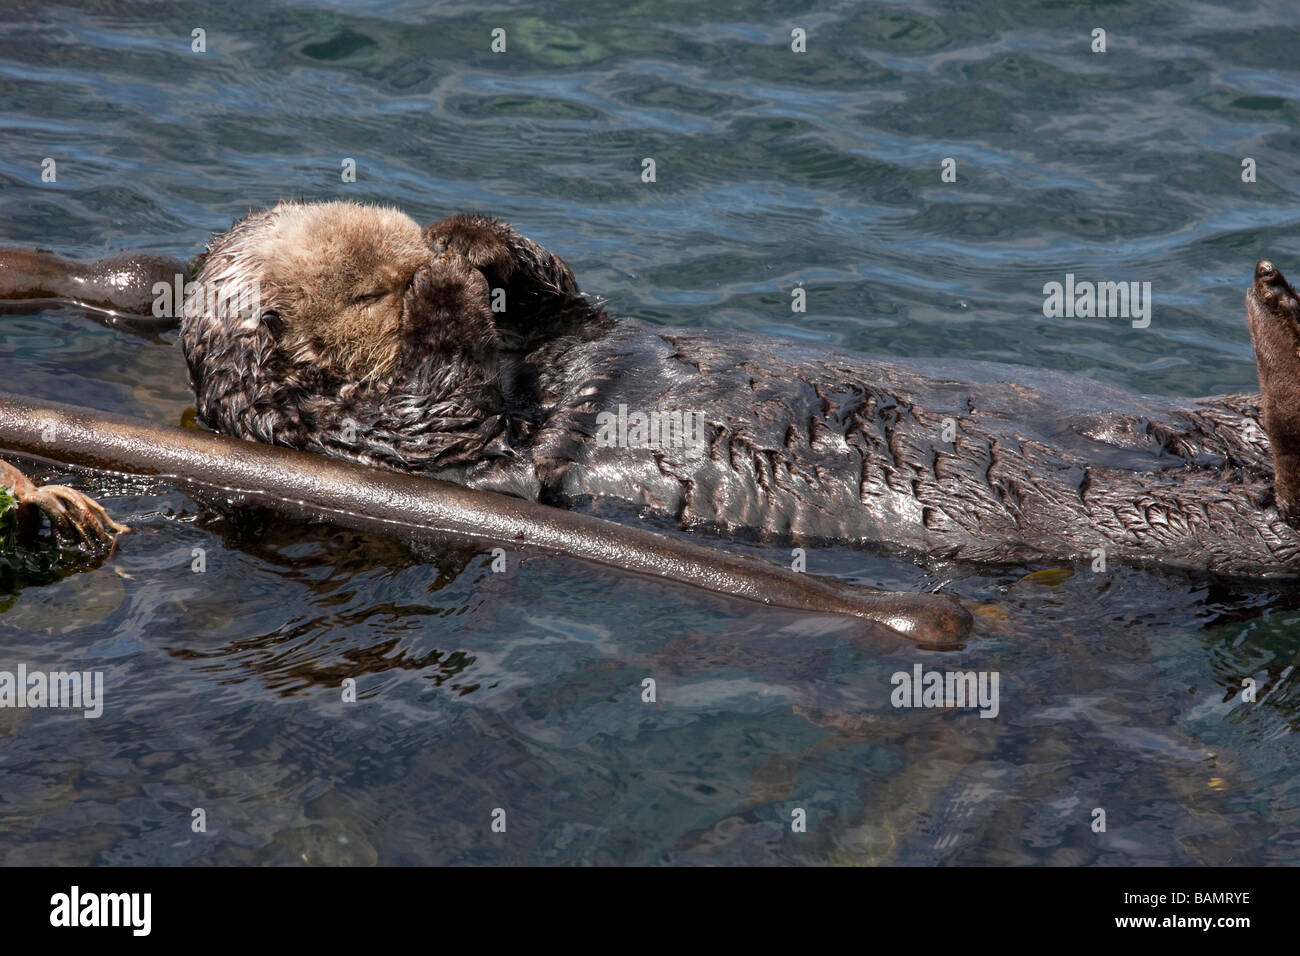 Sea otter in Point Lobos State Reserve, California, USA - Stock Image